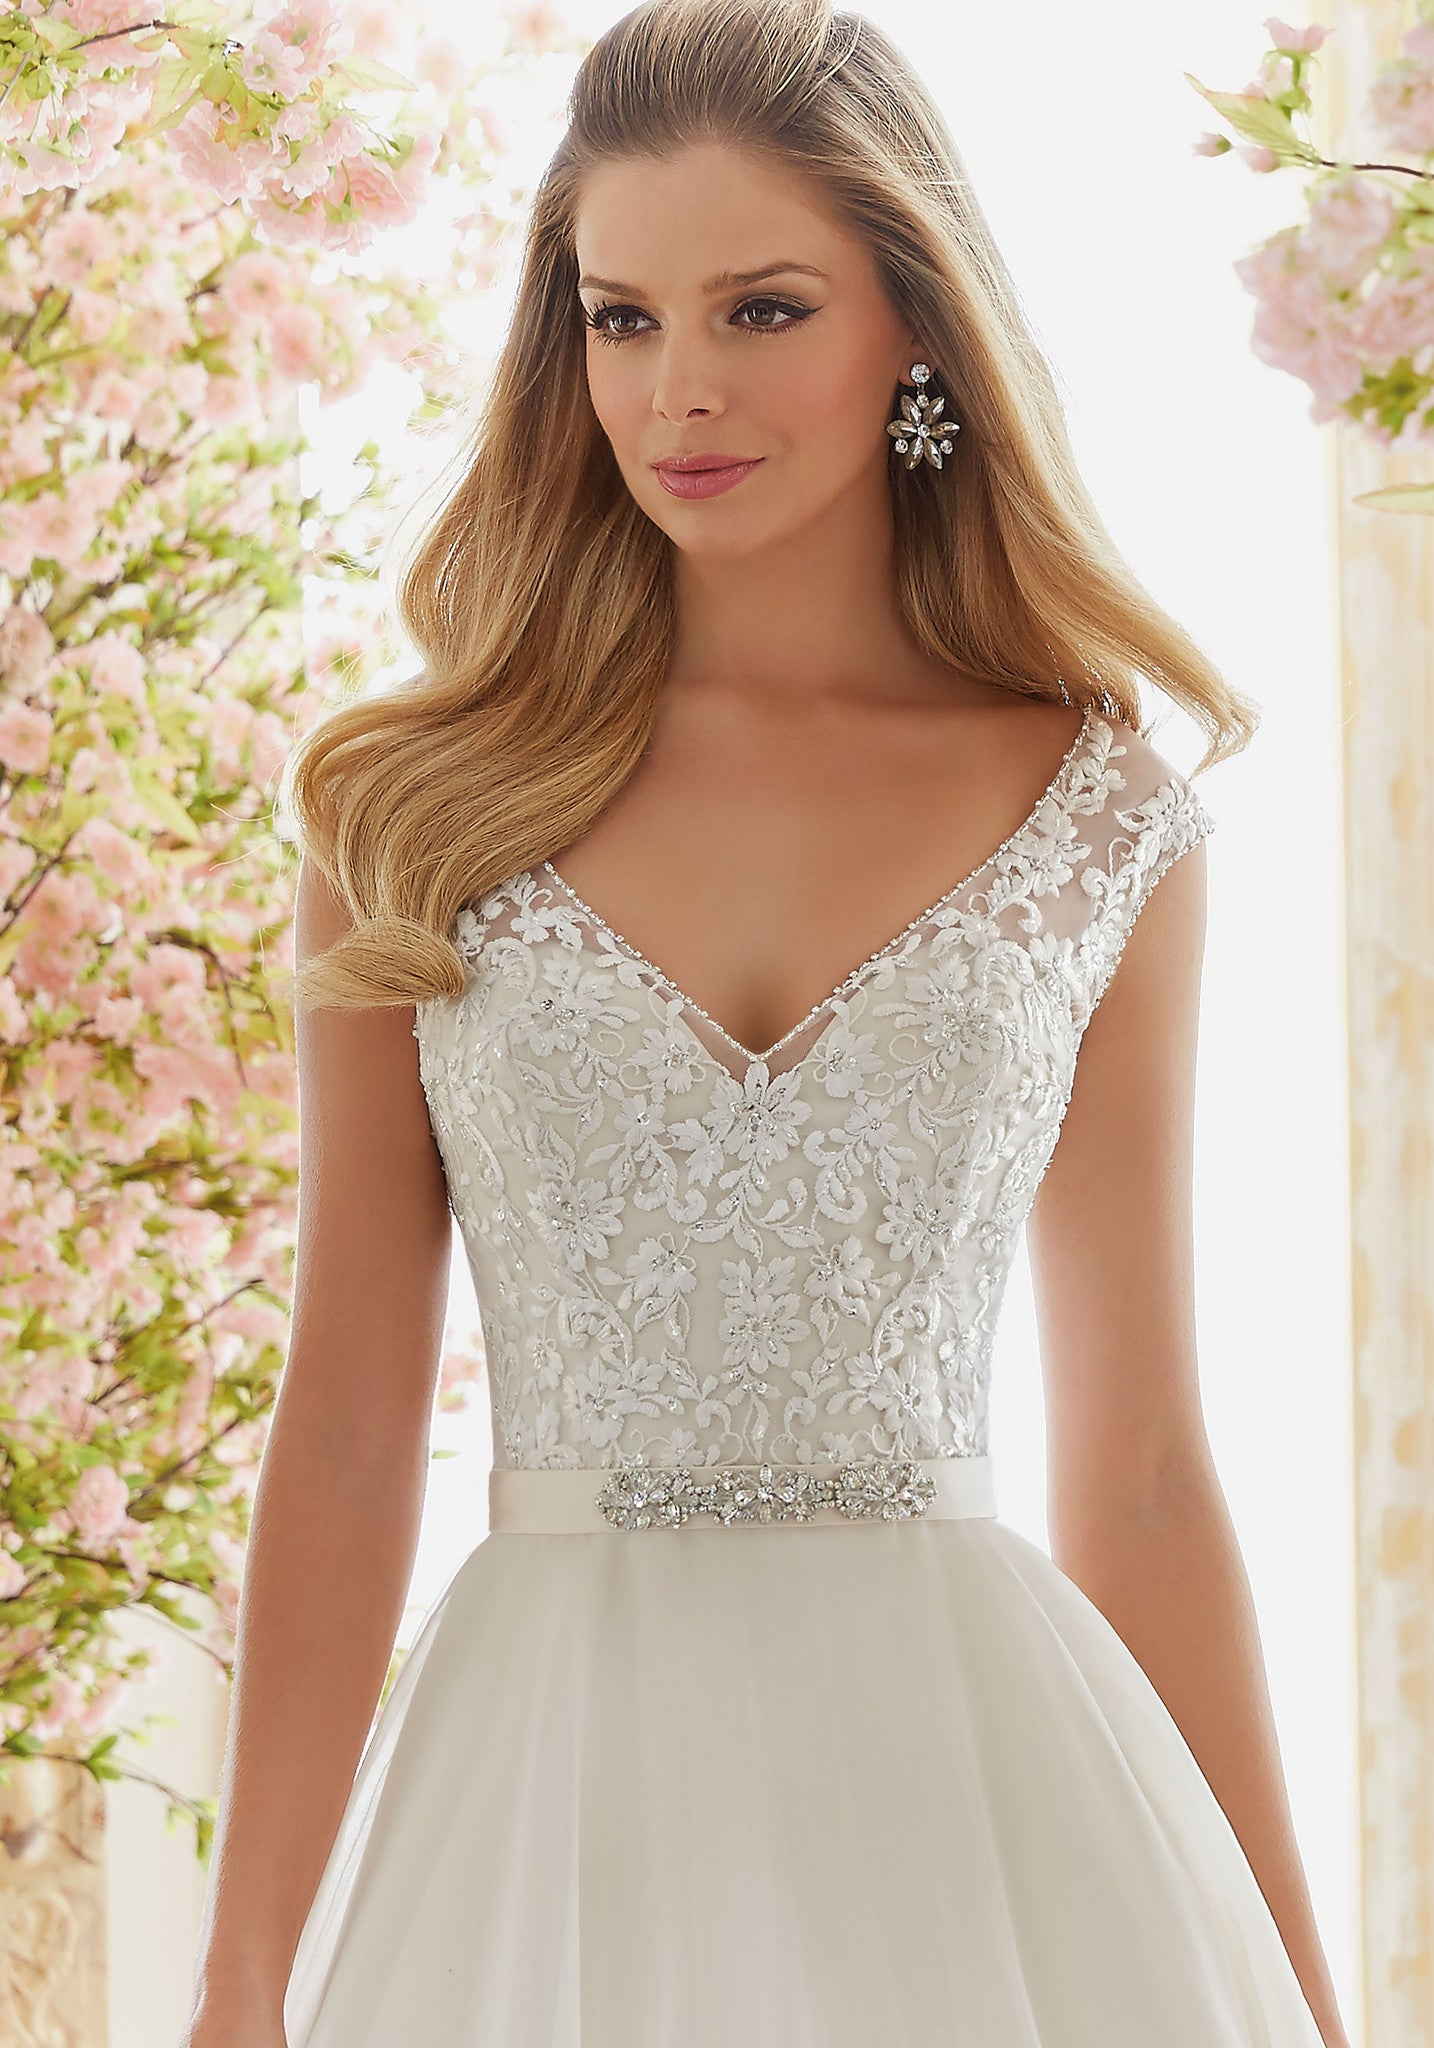 NXOIF - Mori Lee Bridal